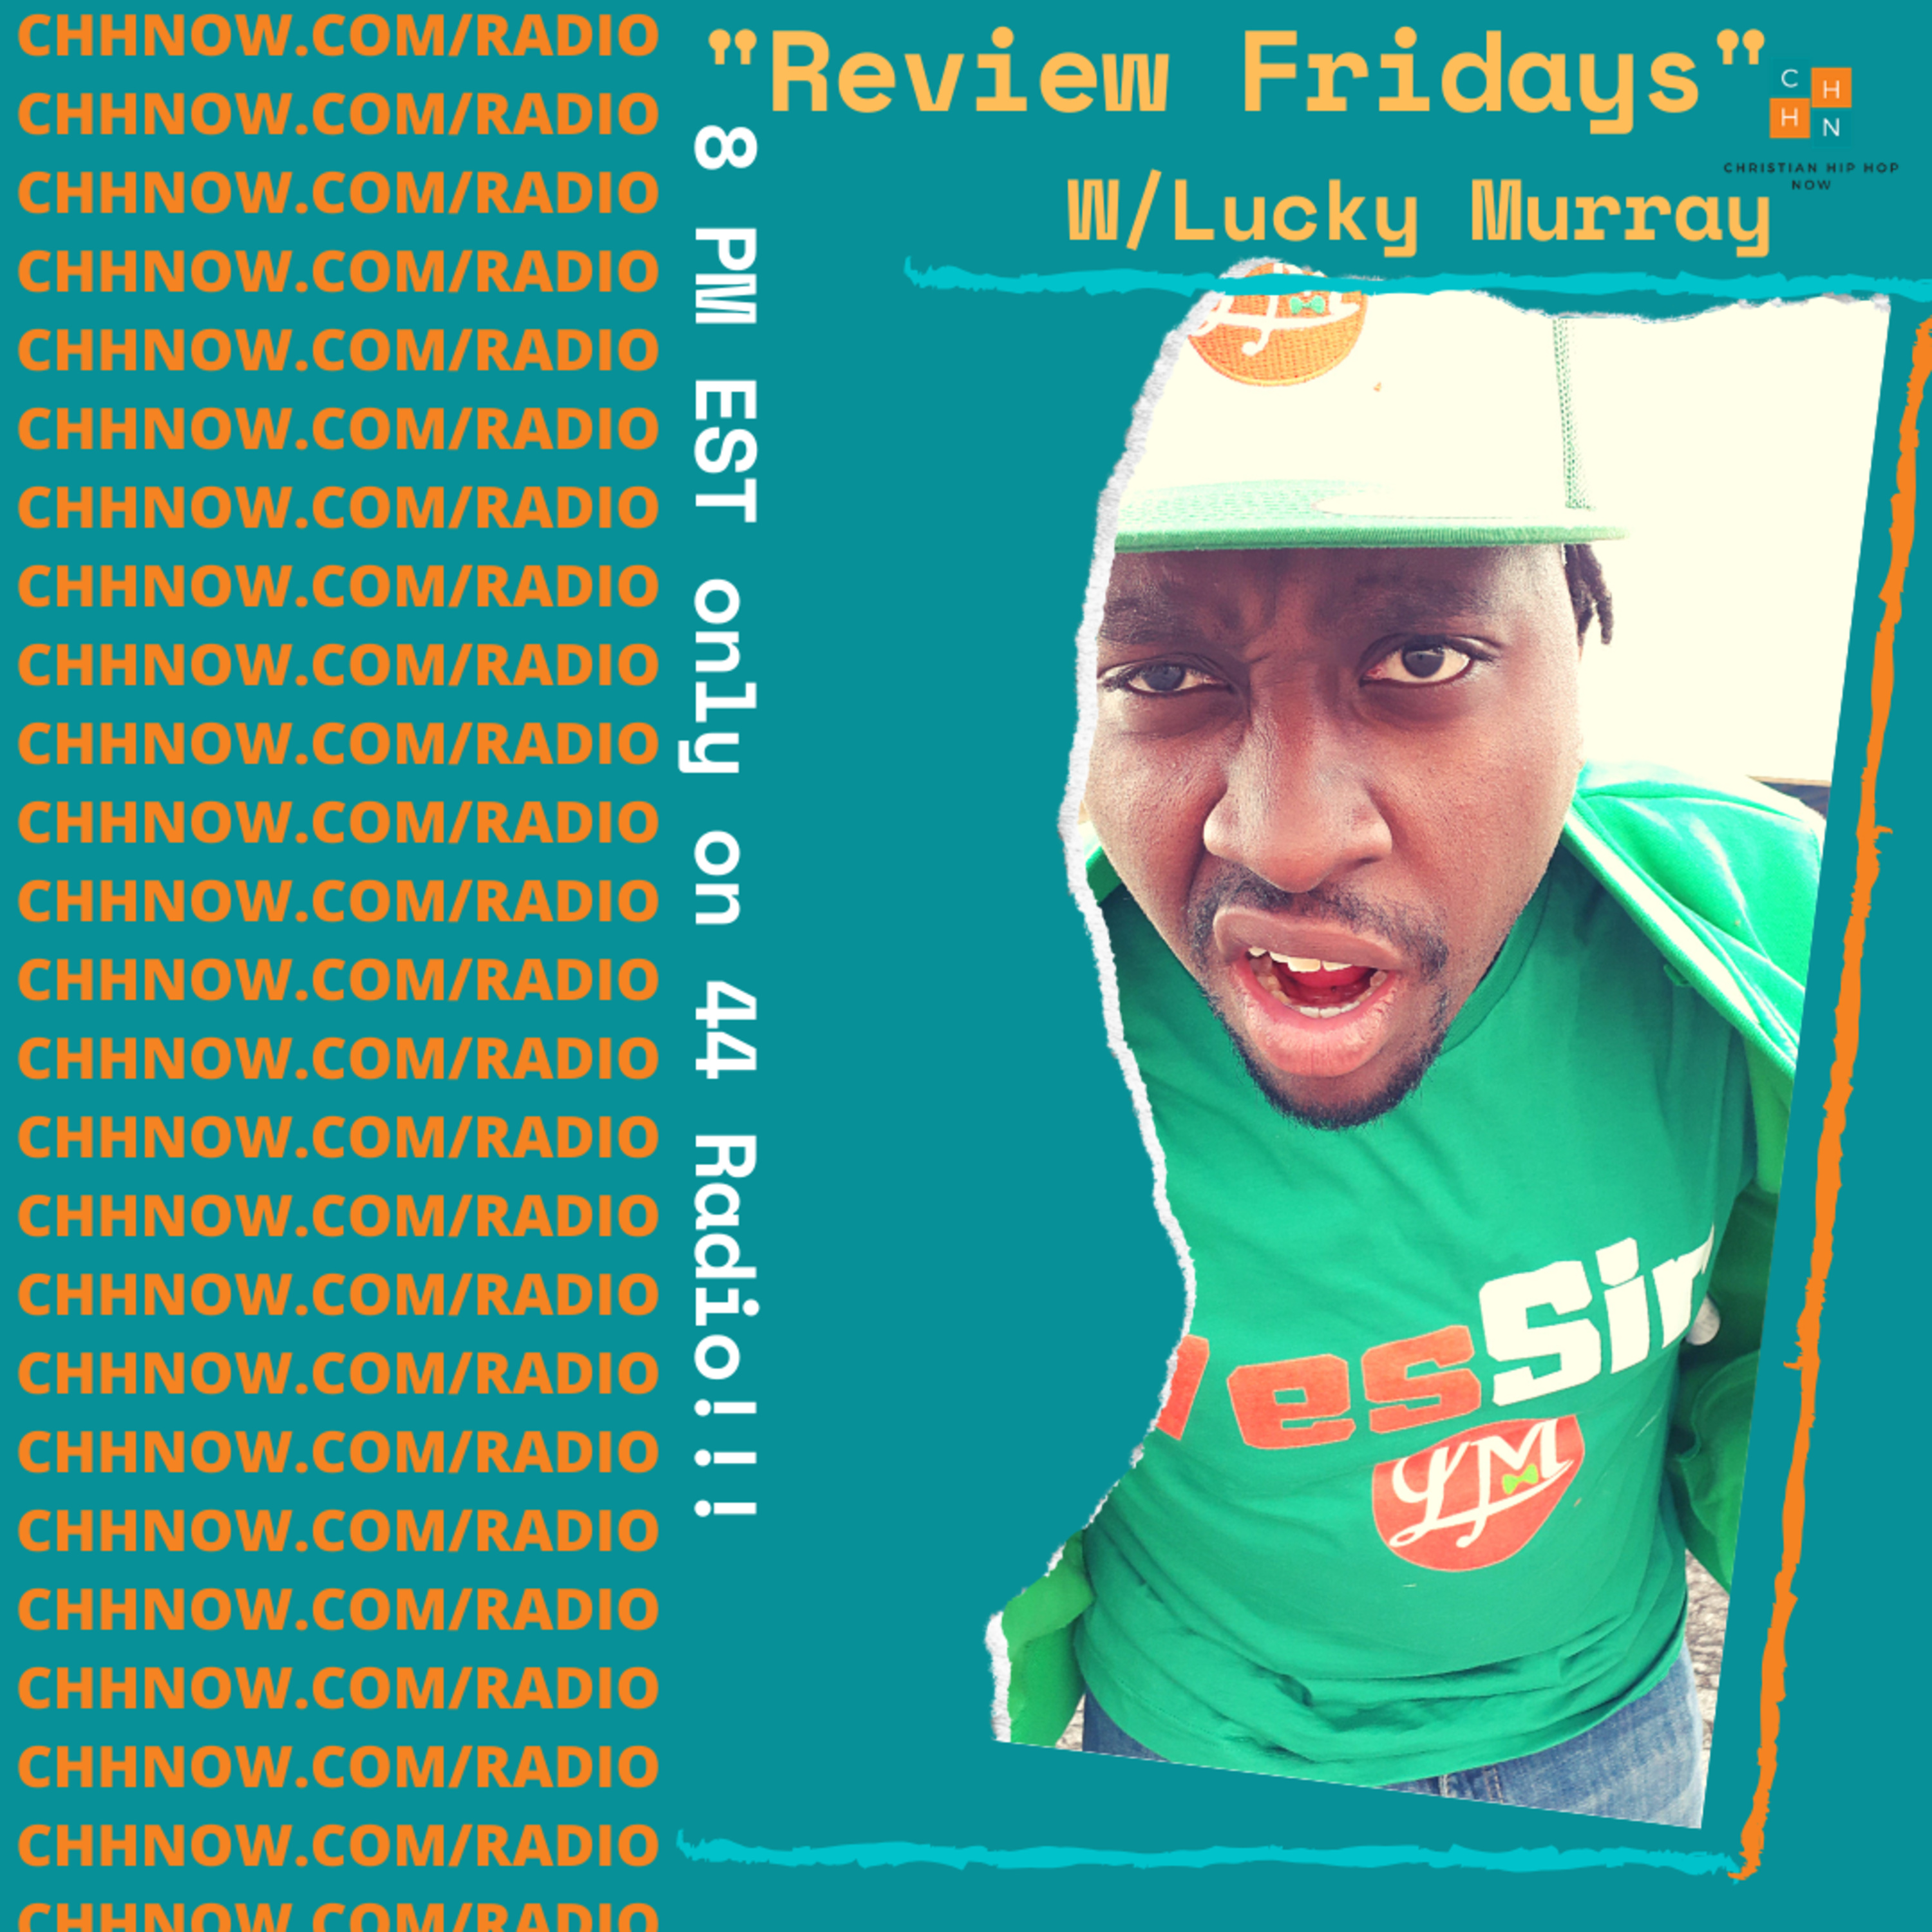 Review Friday's New Christian Hip Hop on 44 Radio 9-11-20